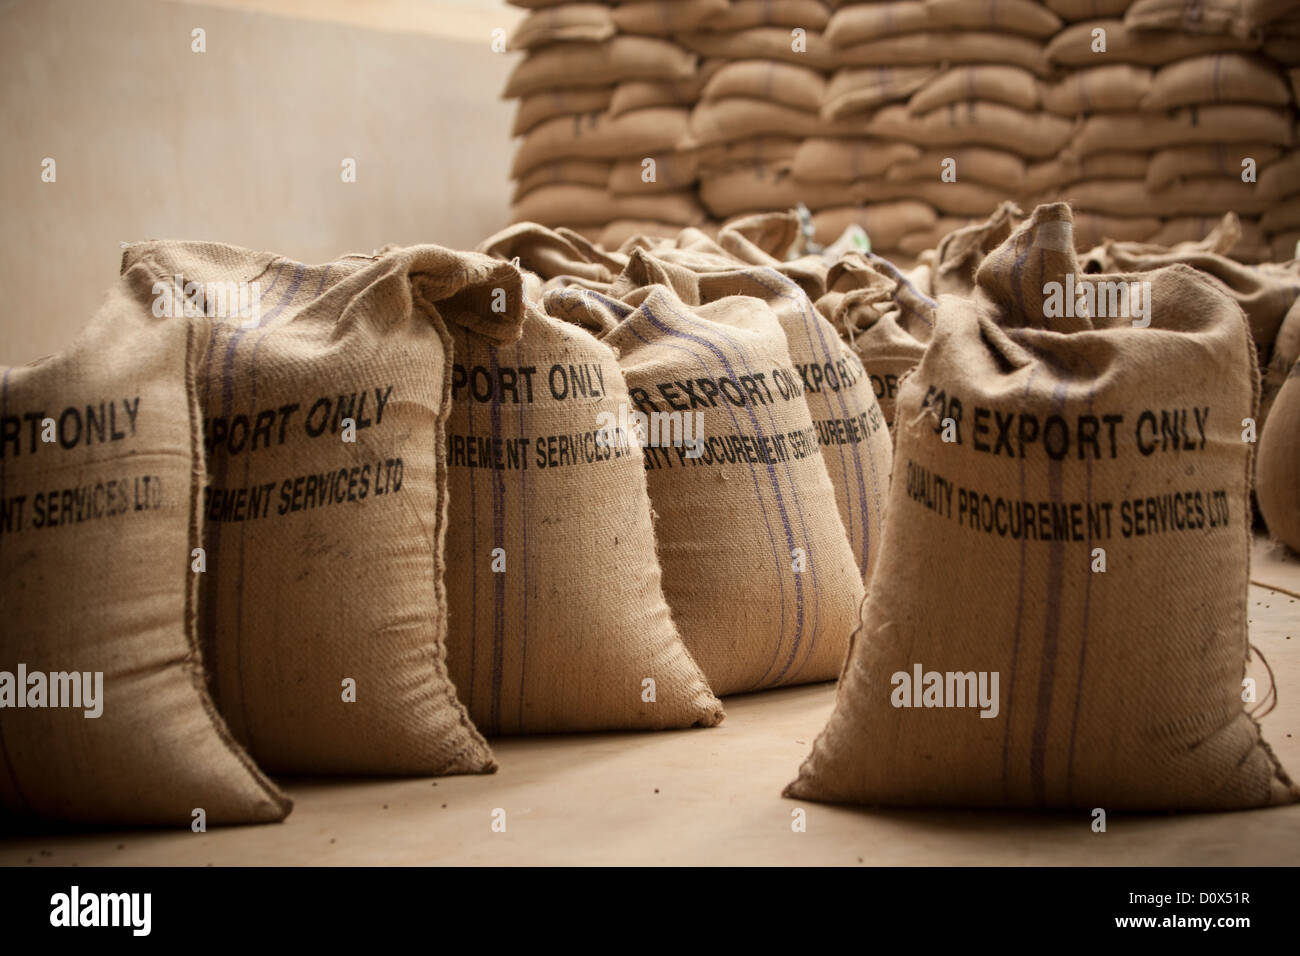 Bags of coffee beans are ready for export at a warehouse ...